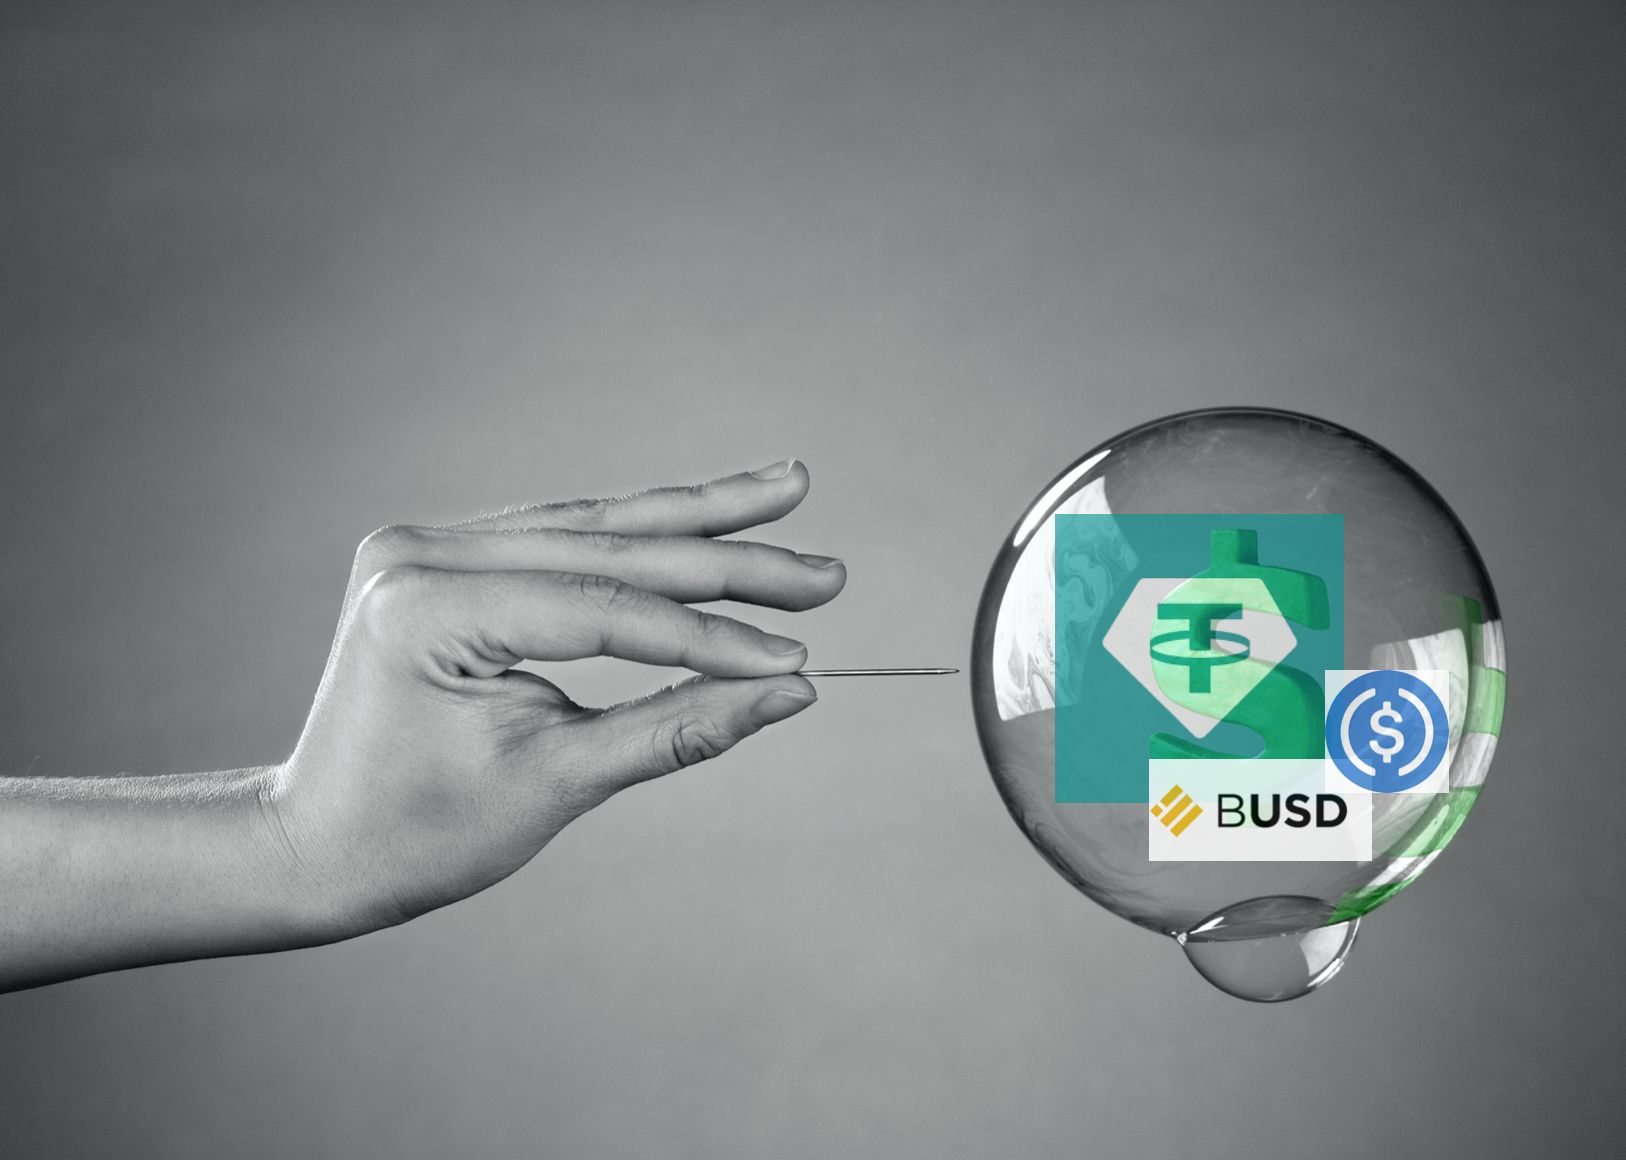 /tether-off-chain-stablecoins-and-synthetic-crypto-bubbles-07j35yb feature image